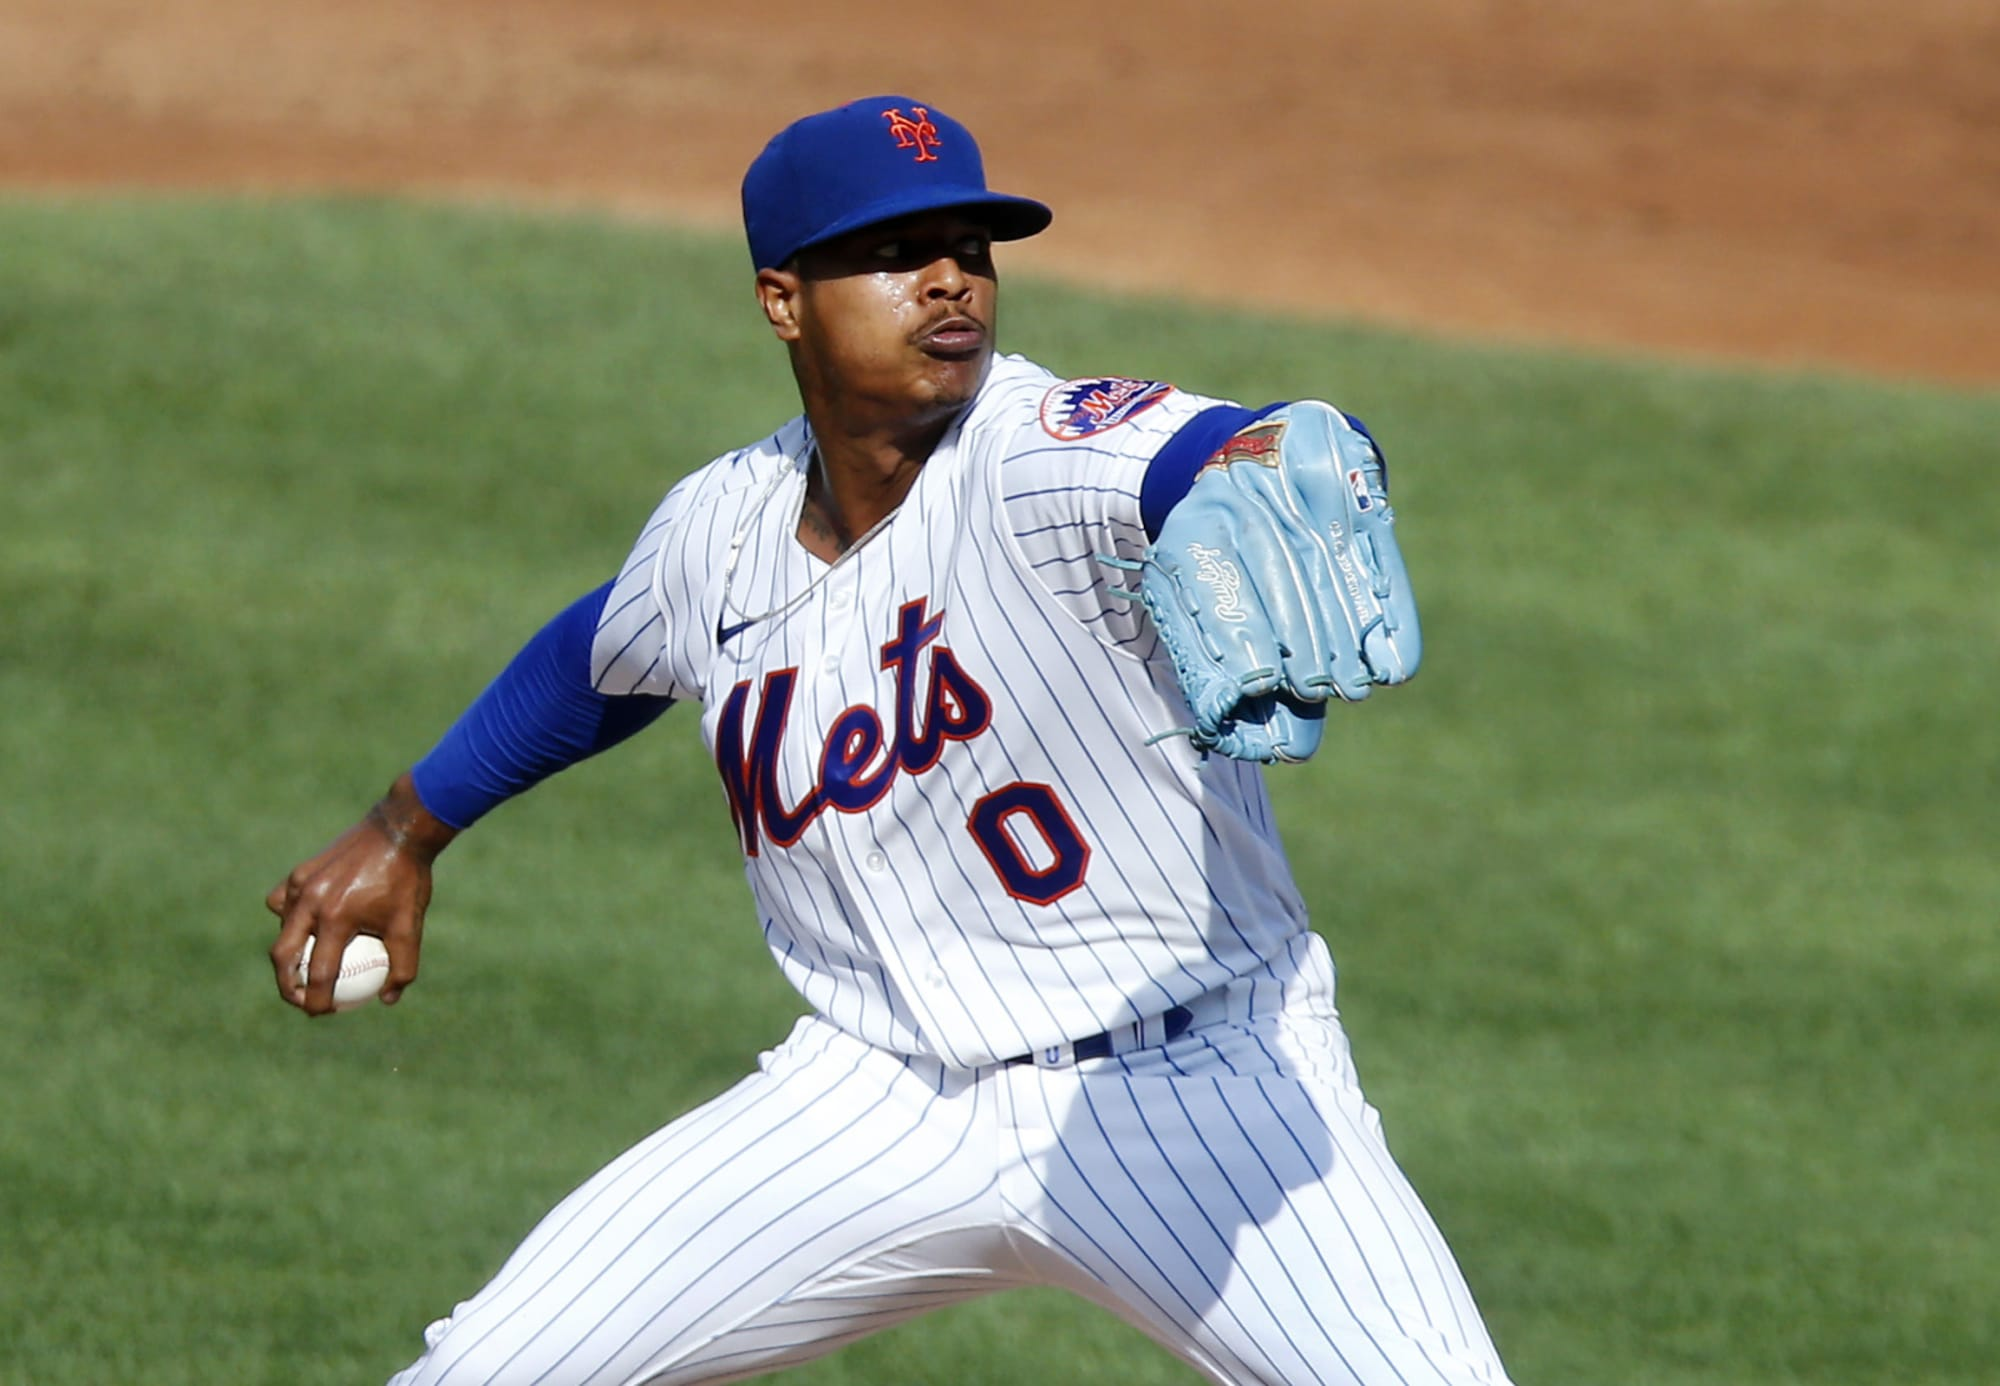 Marcus Stroman pitches in a New York Mets game